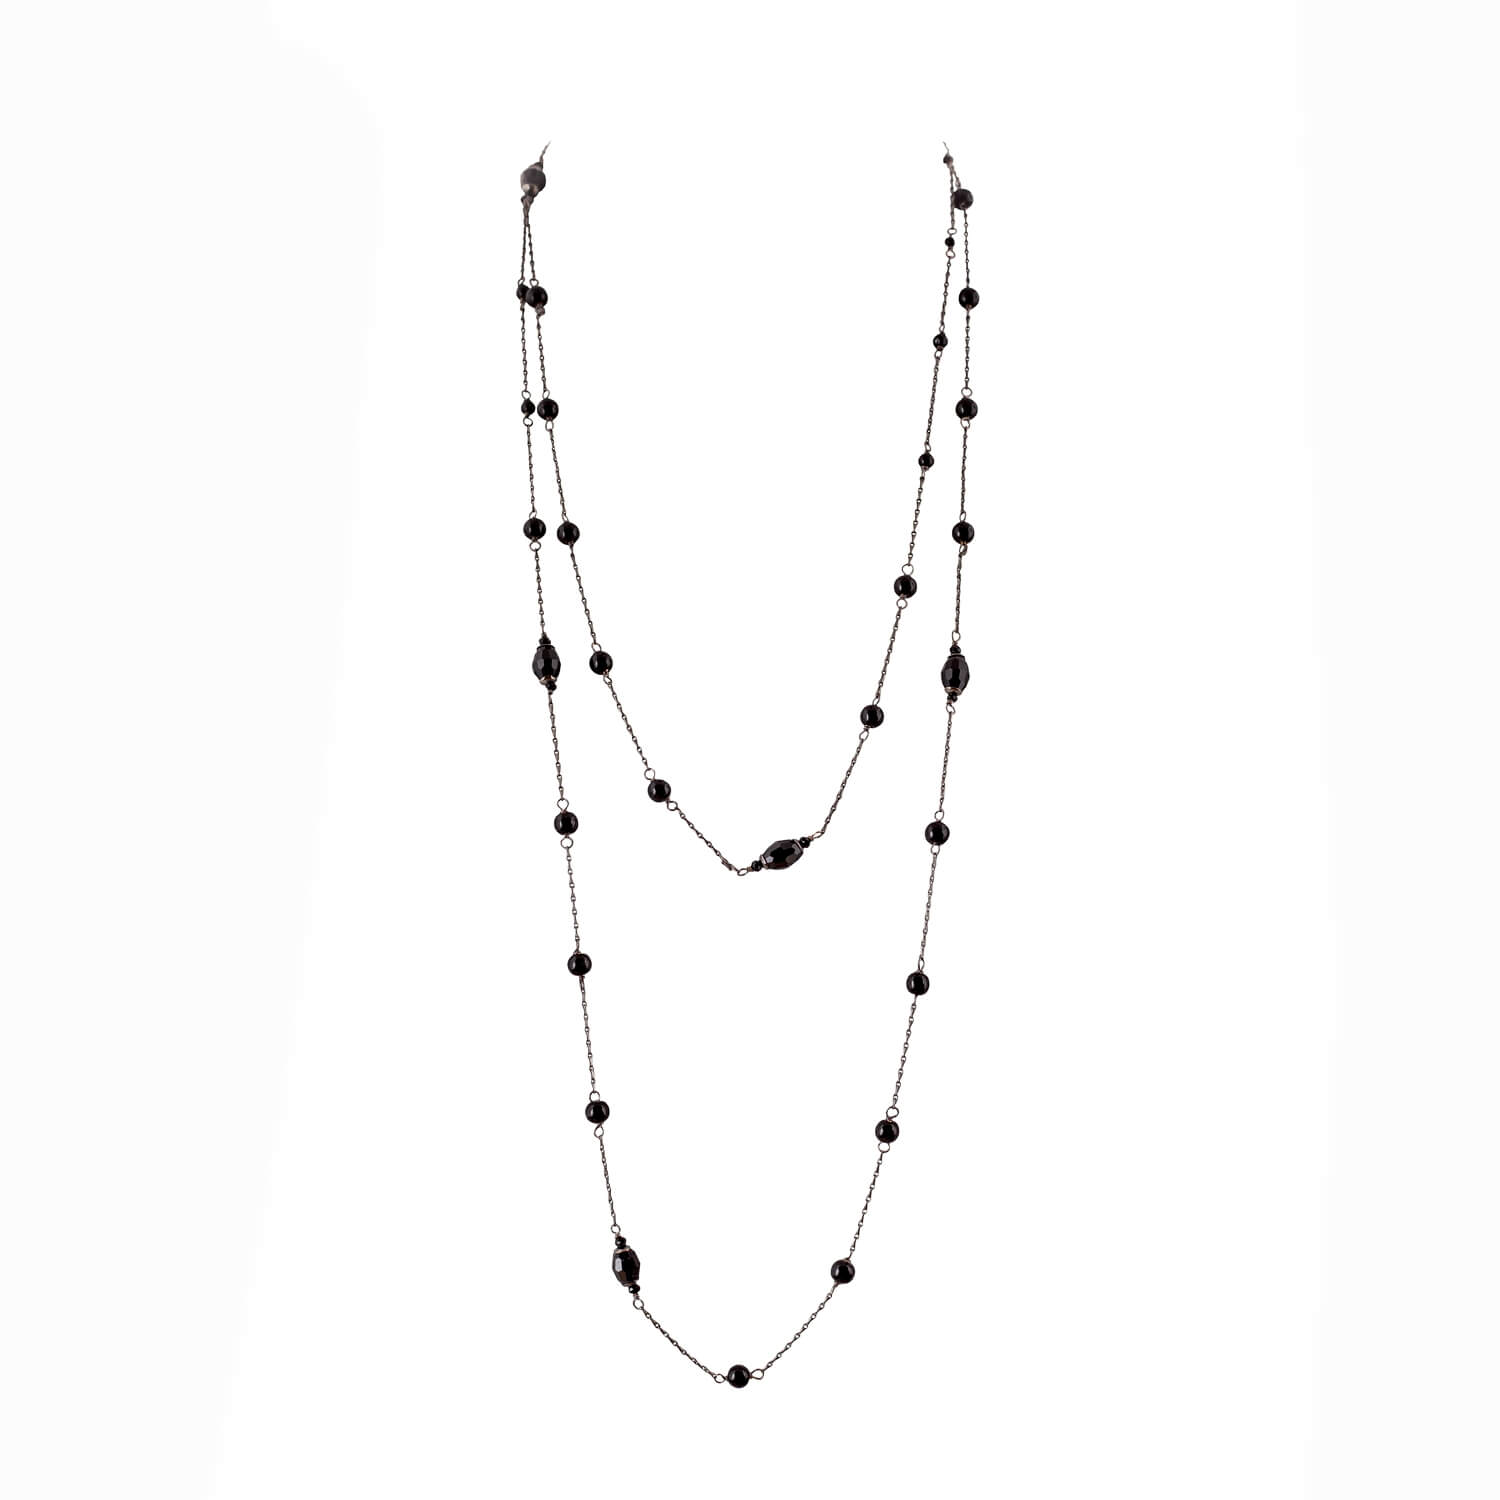 Wrap-around Necklace- Jet Black